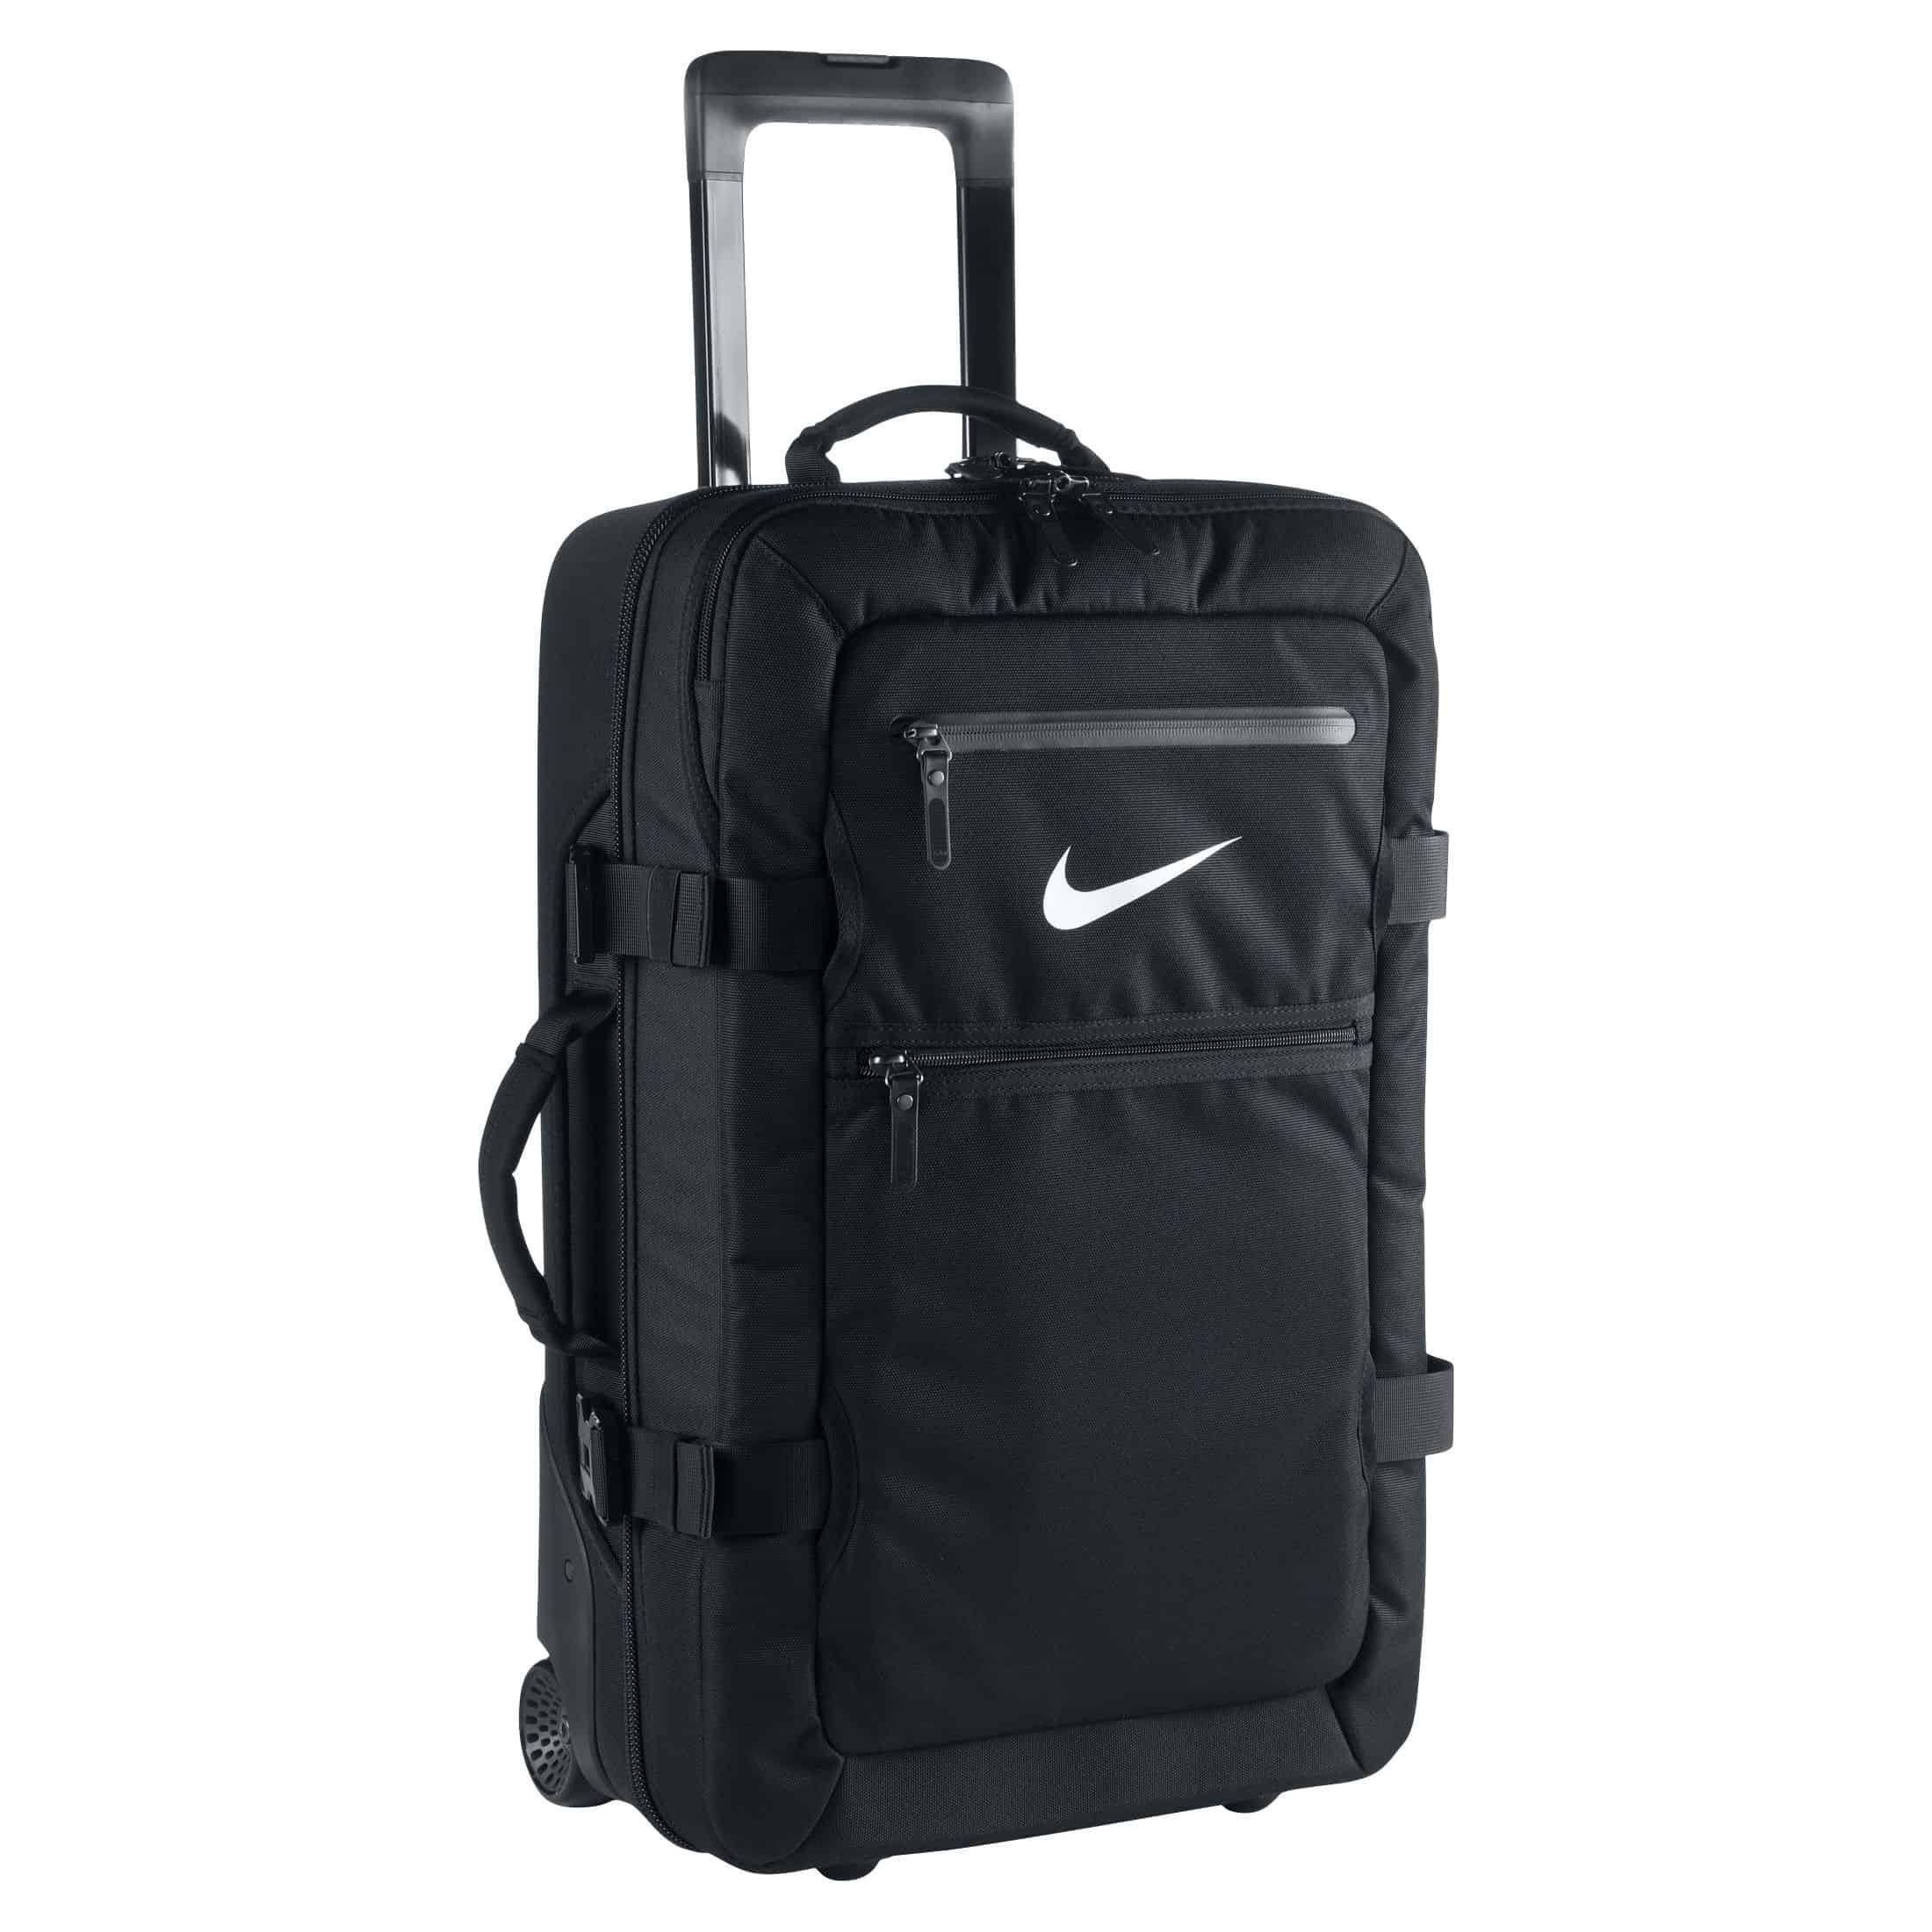 nouvelle arrivee 99a9f 195be Valise Nike à roulettes Fiftyone - S